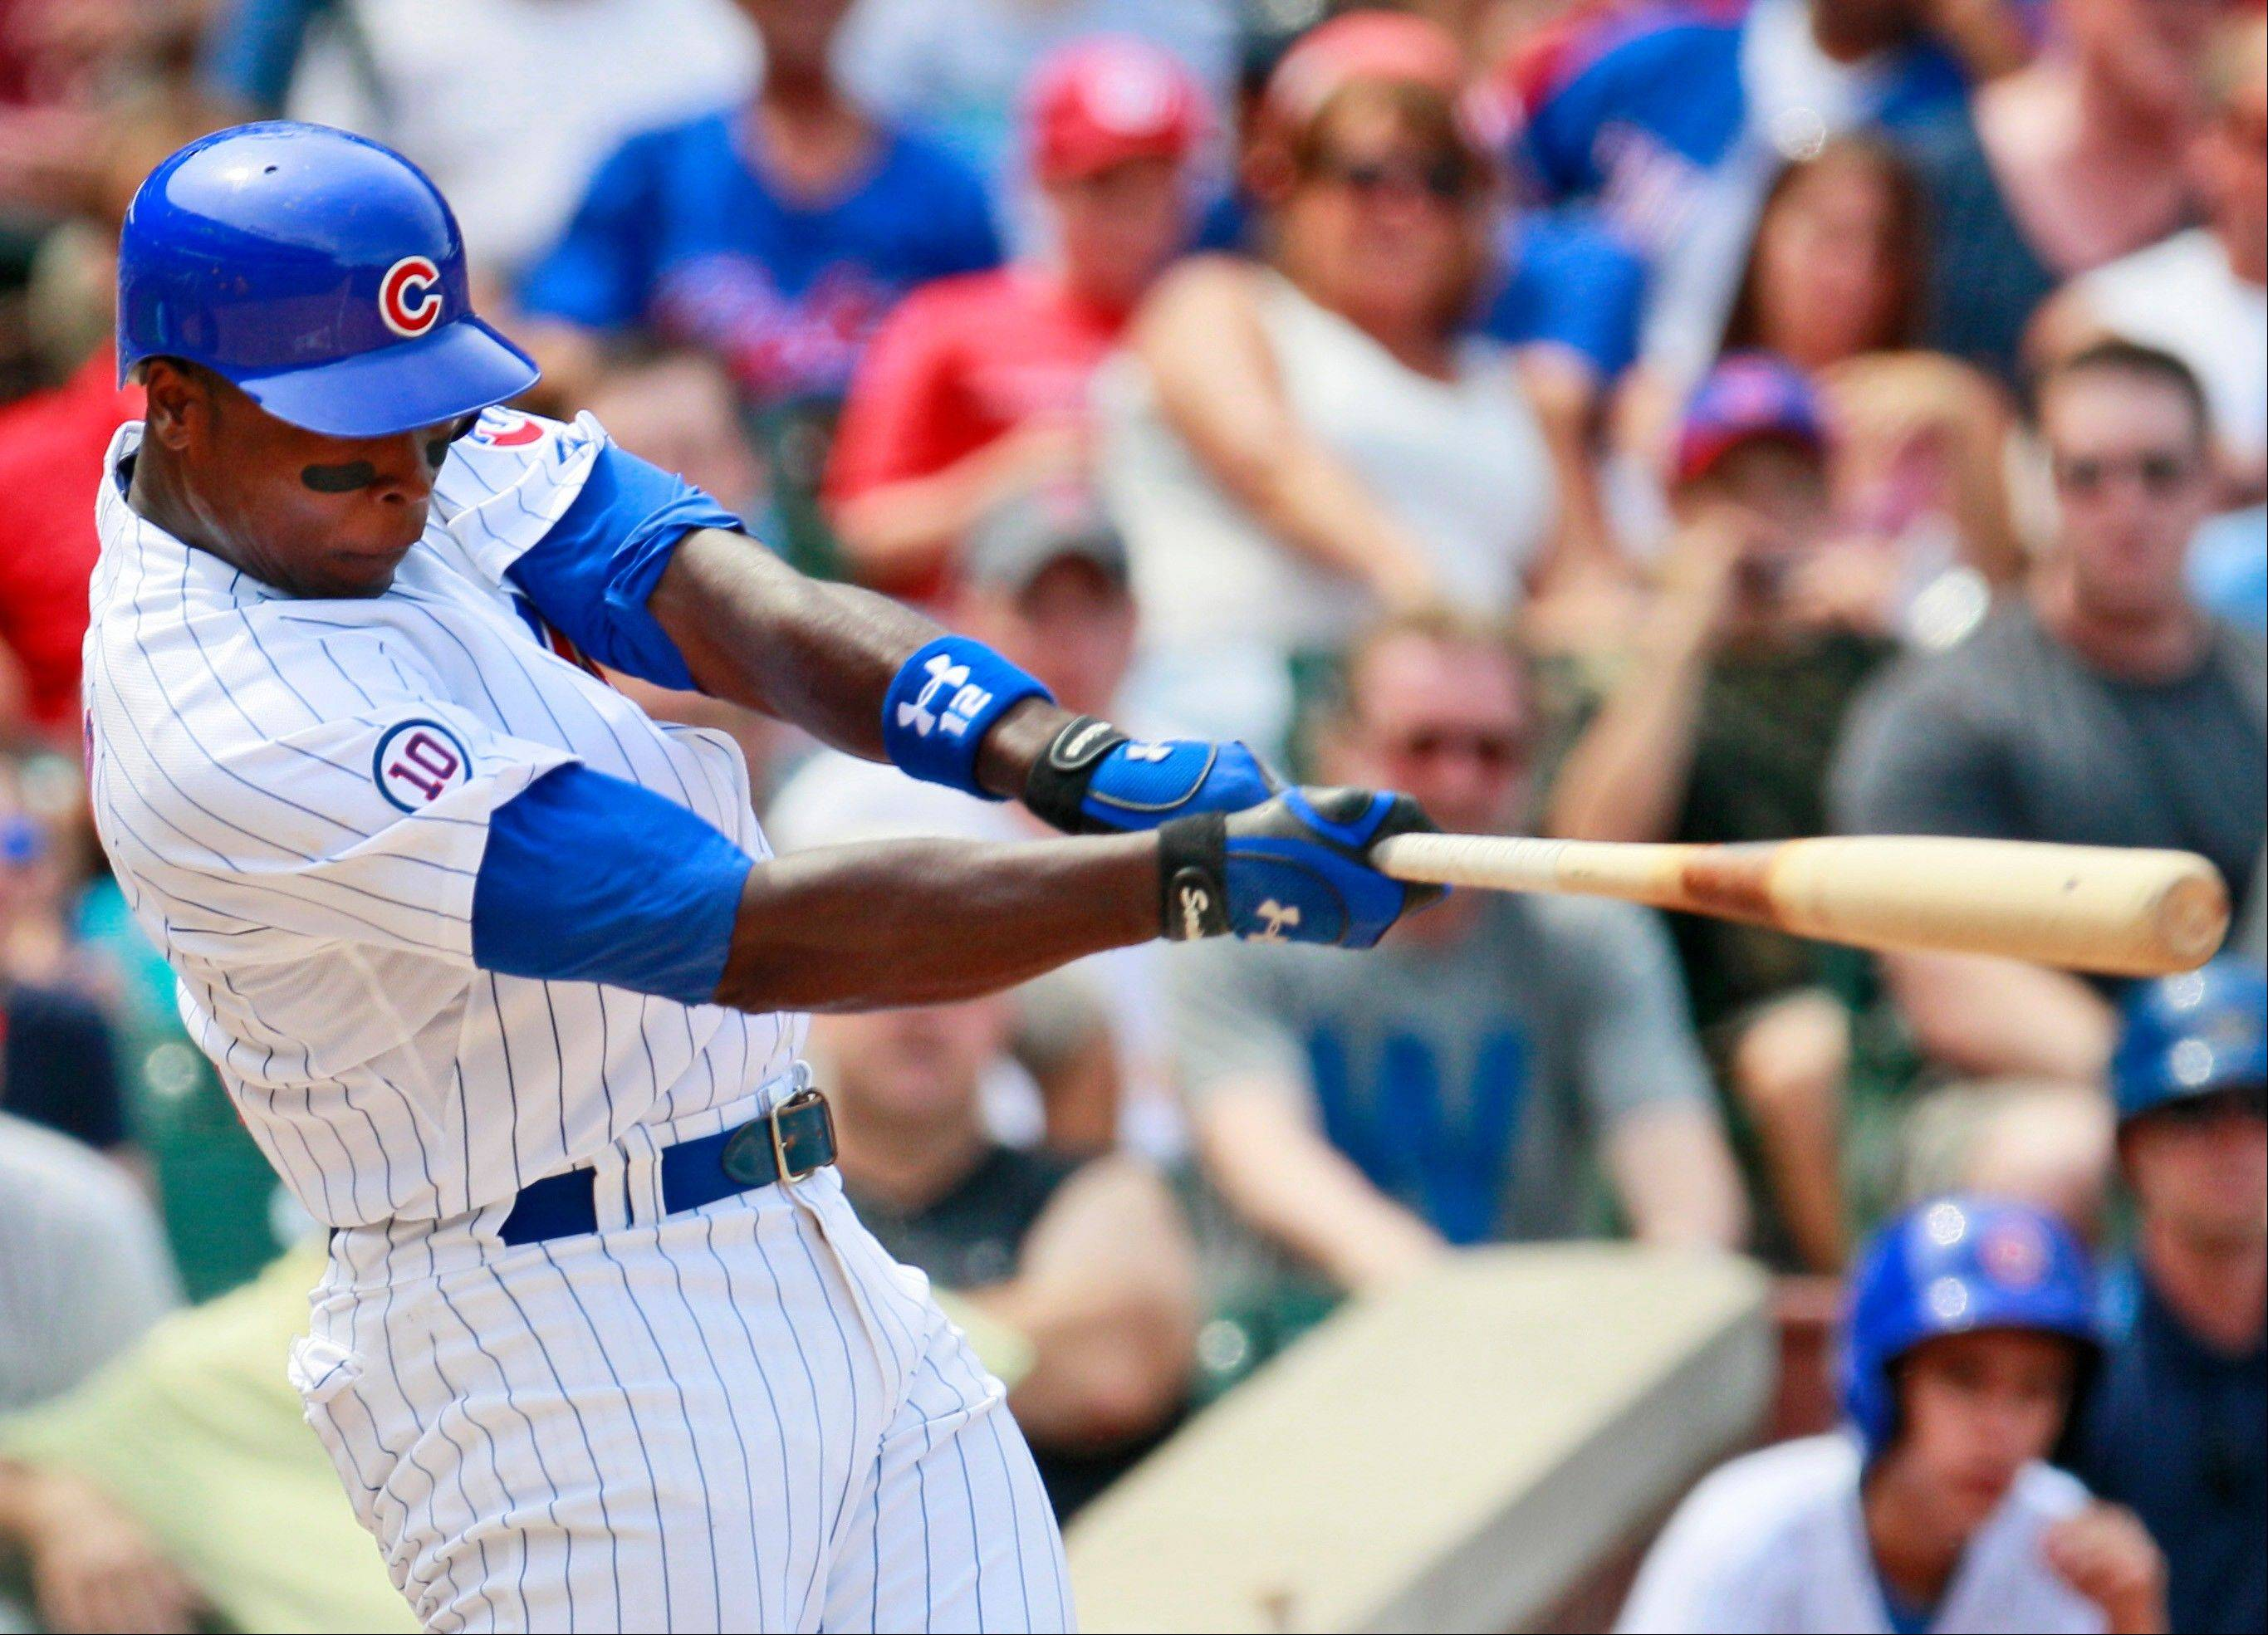 Alfonso Soriano's solo homer helped spark a 4-run rally in the fifth inning as the Cubs beat the Astros 4-2 Friday.